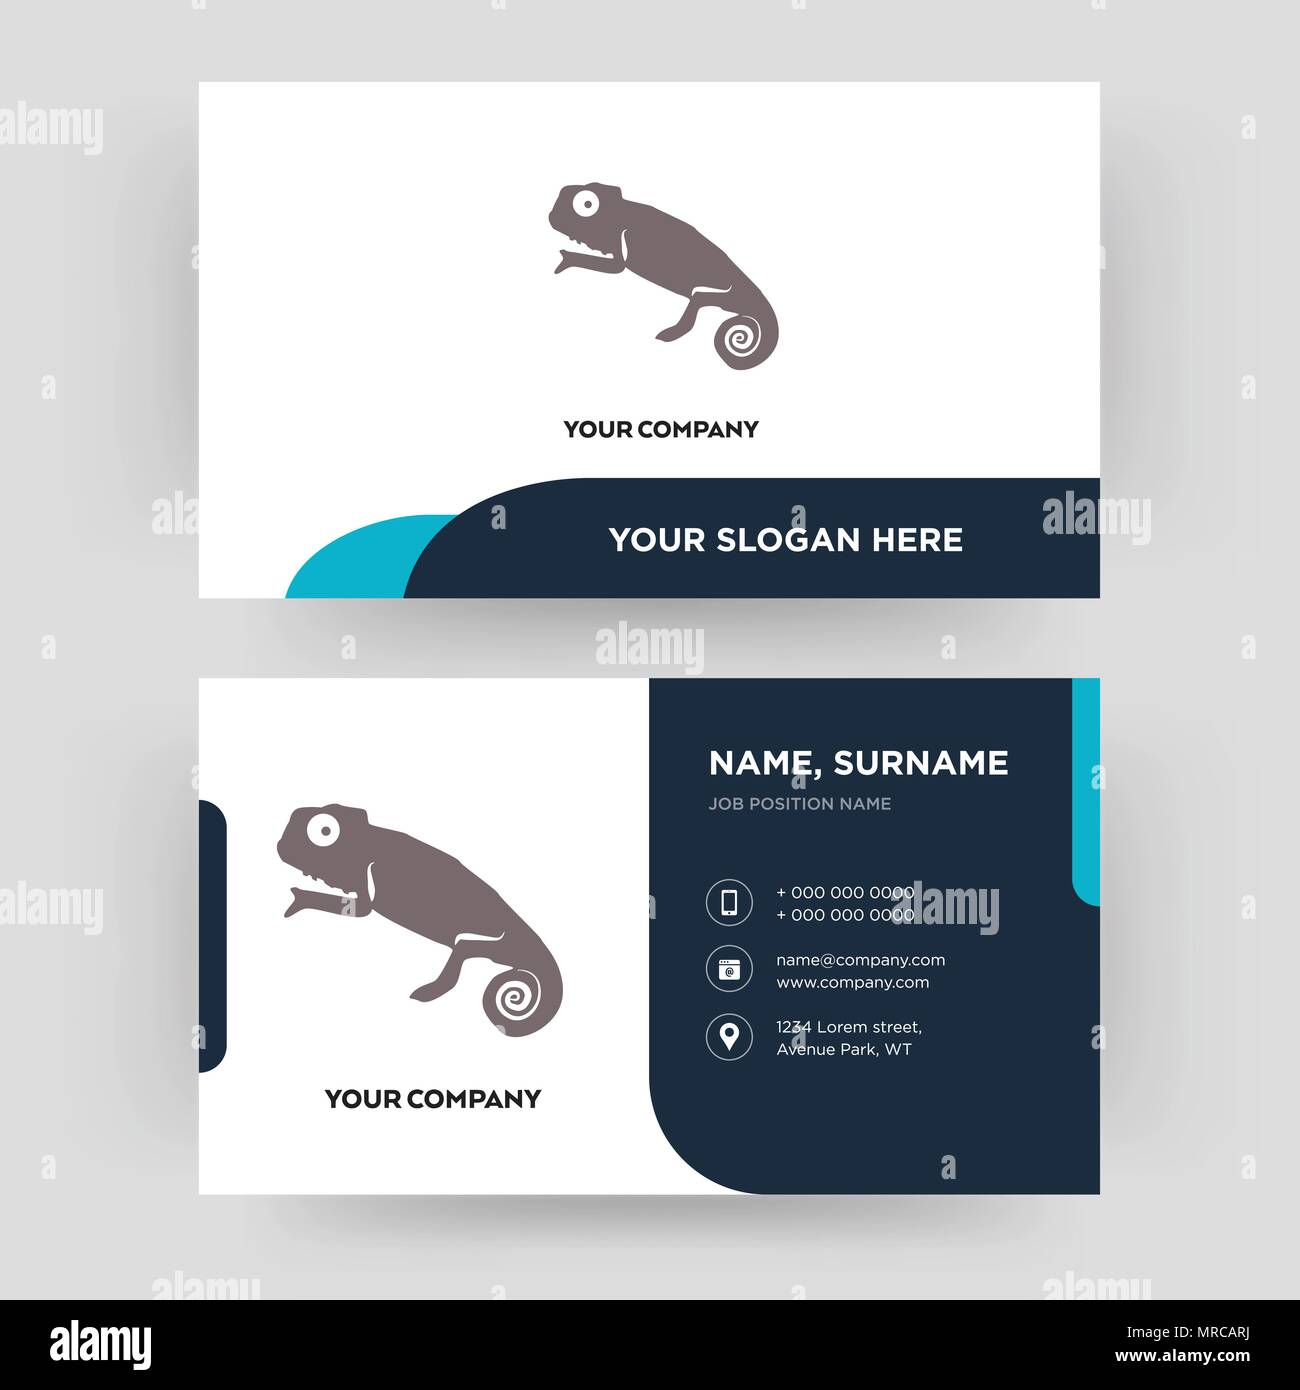 Chameleon Business Card Design Template Visiting For Your Company